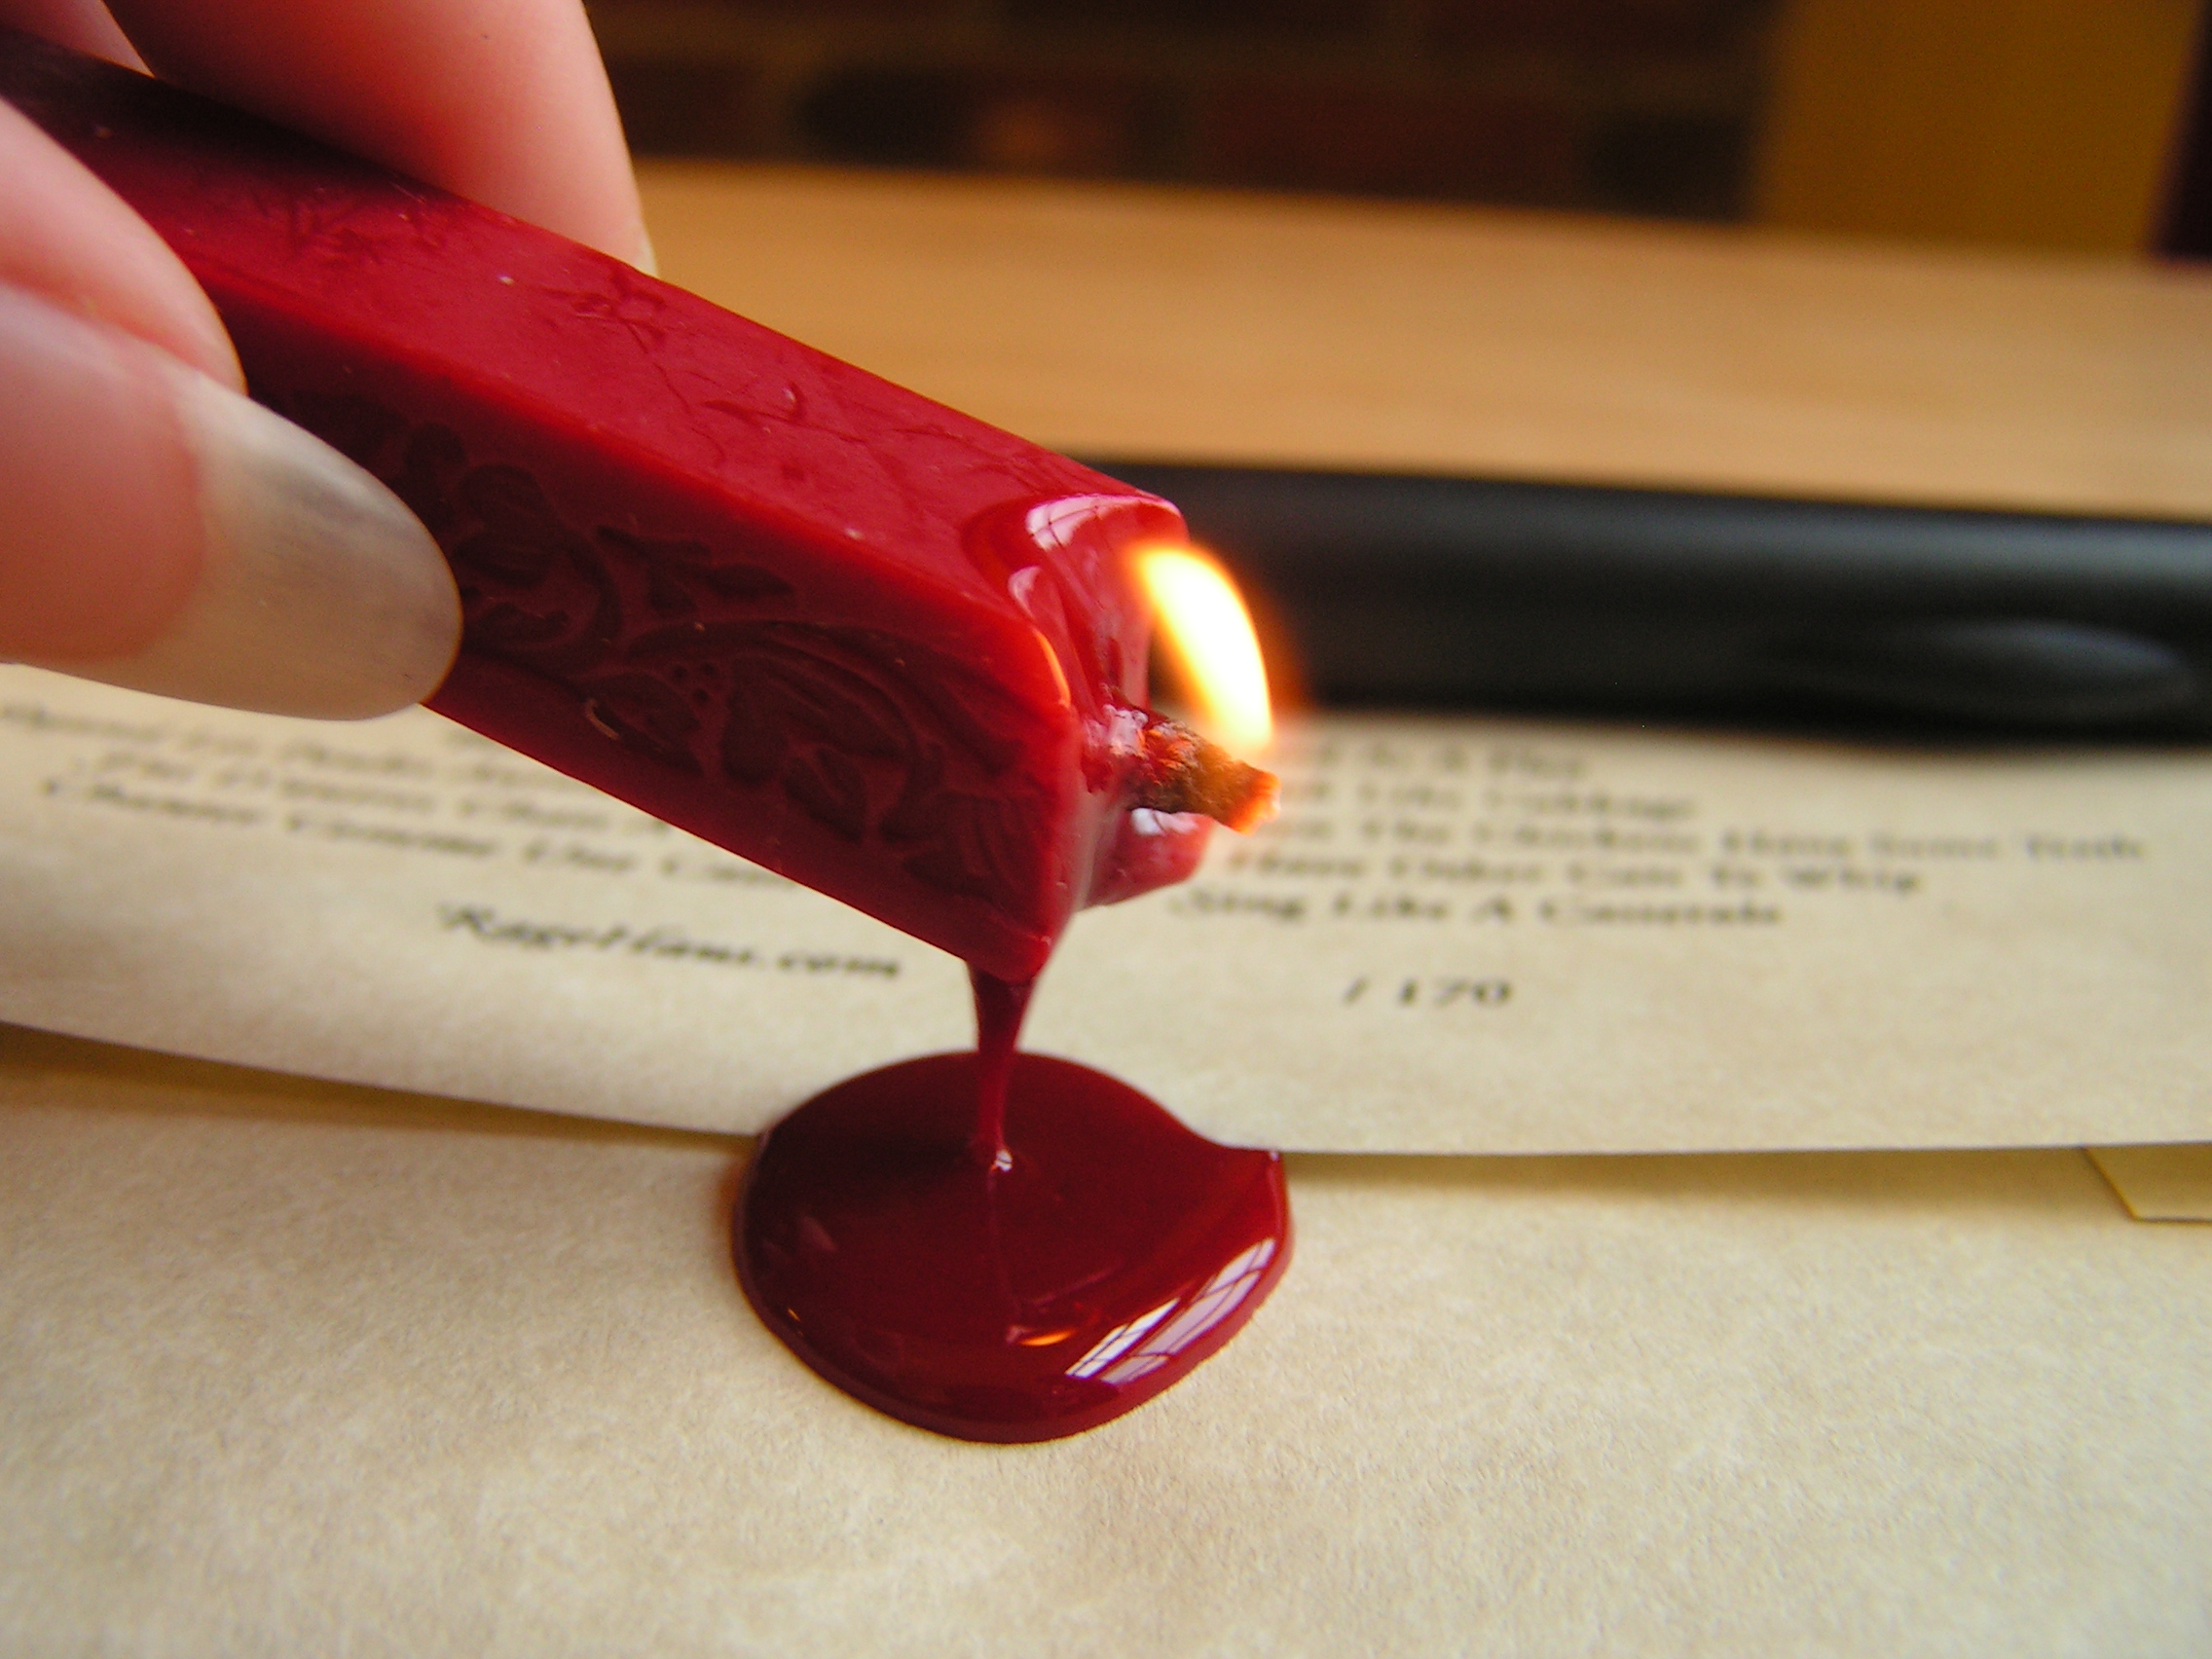 Gloopy drip of hot sealing wax